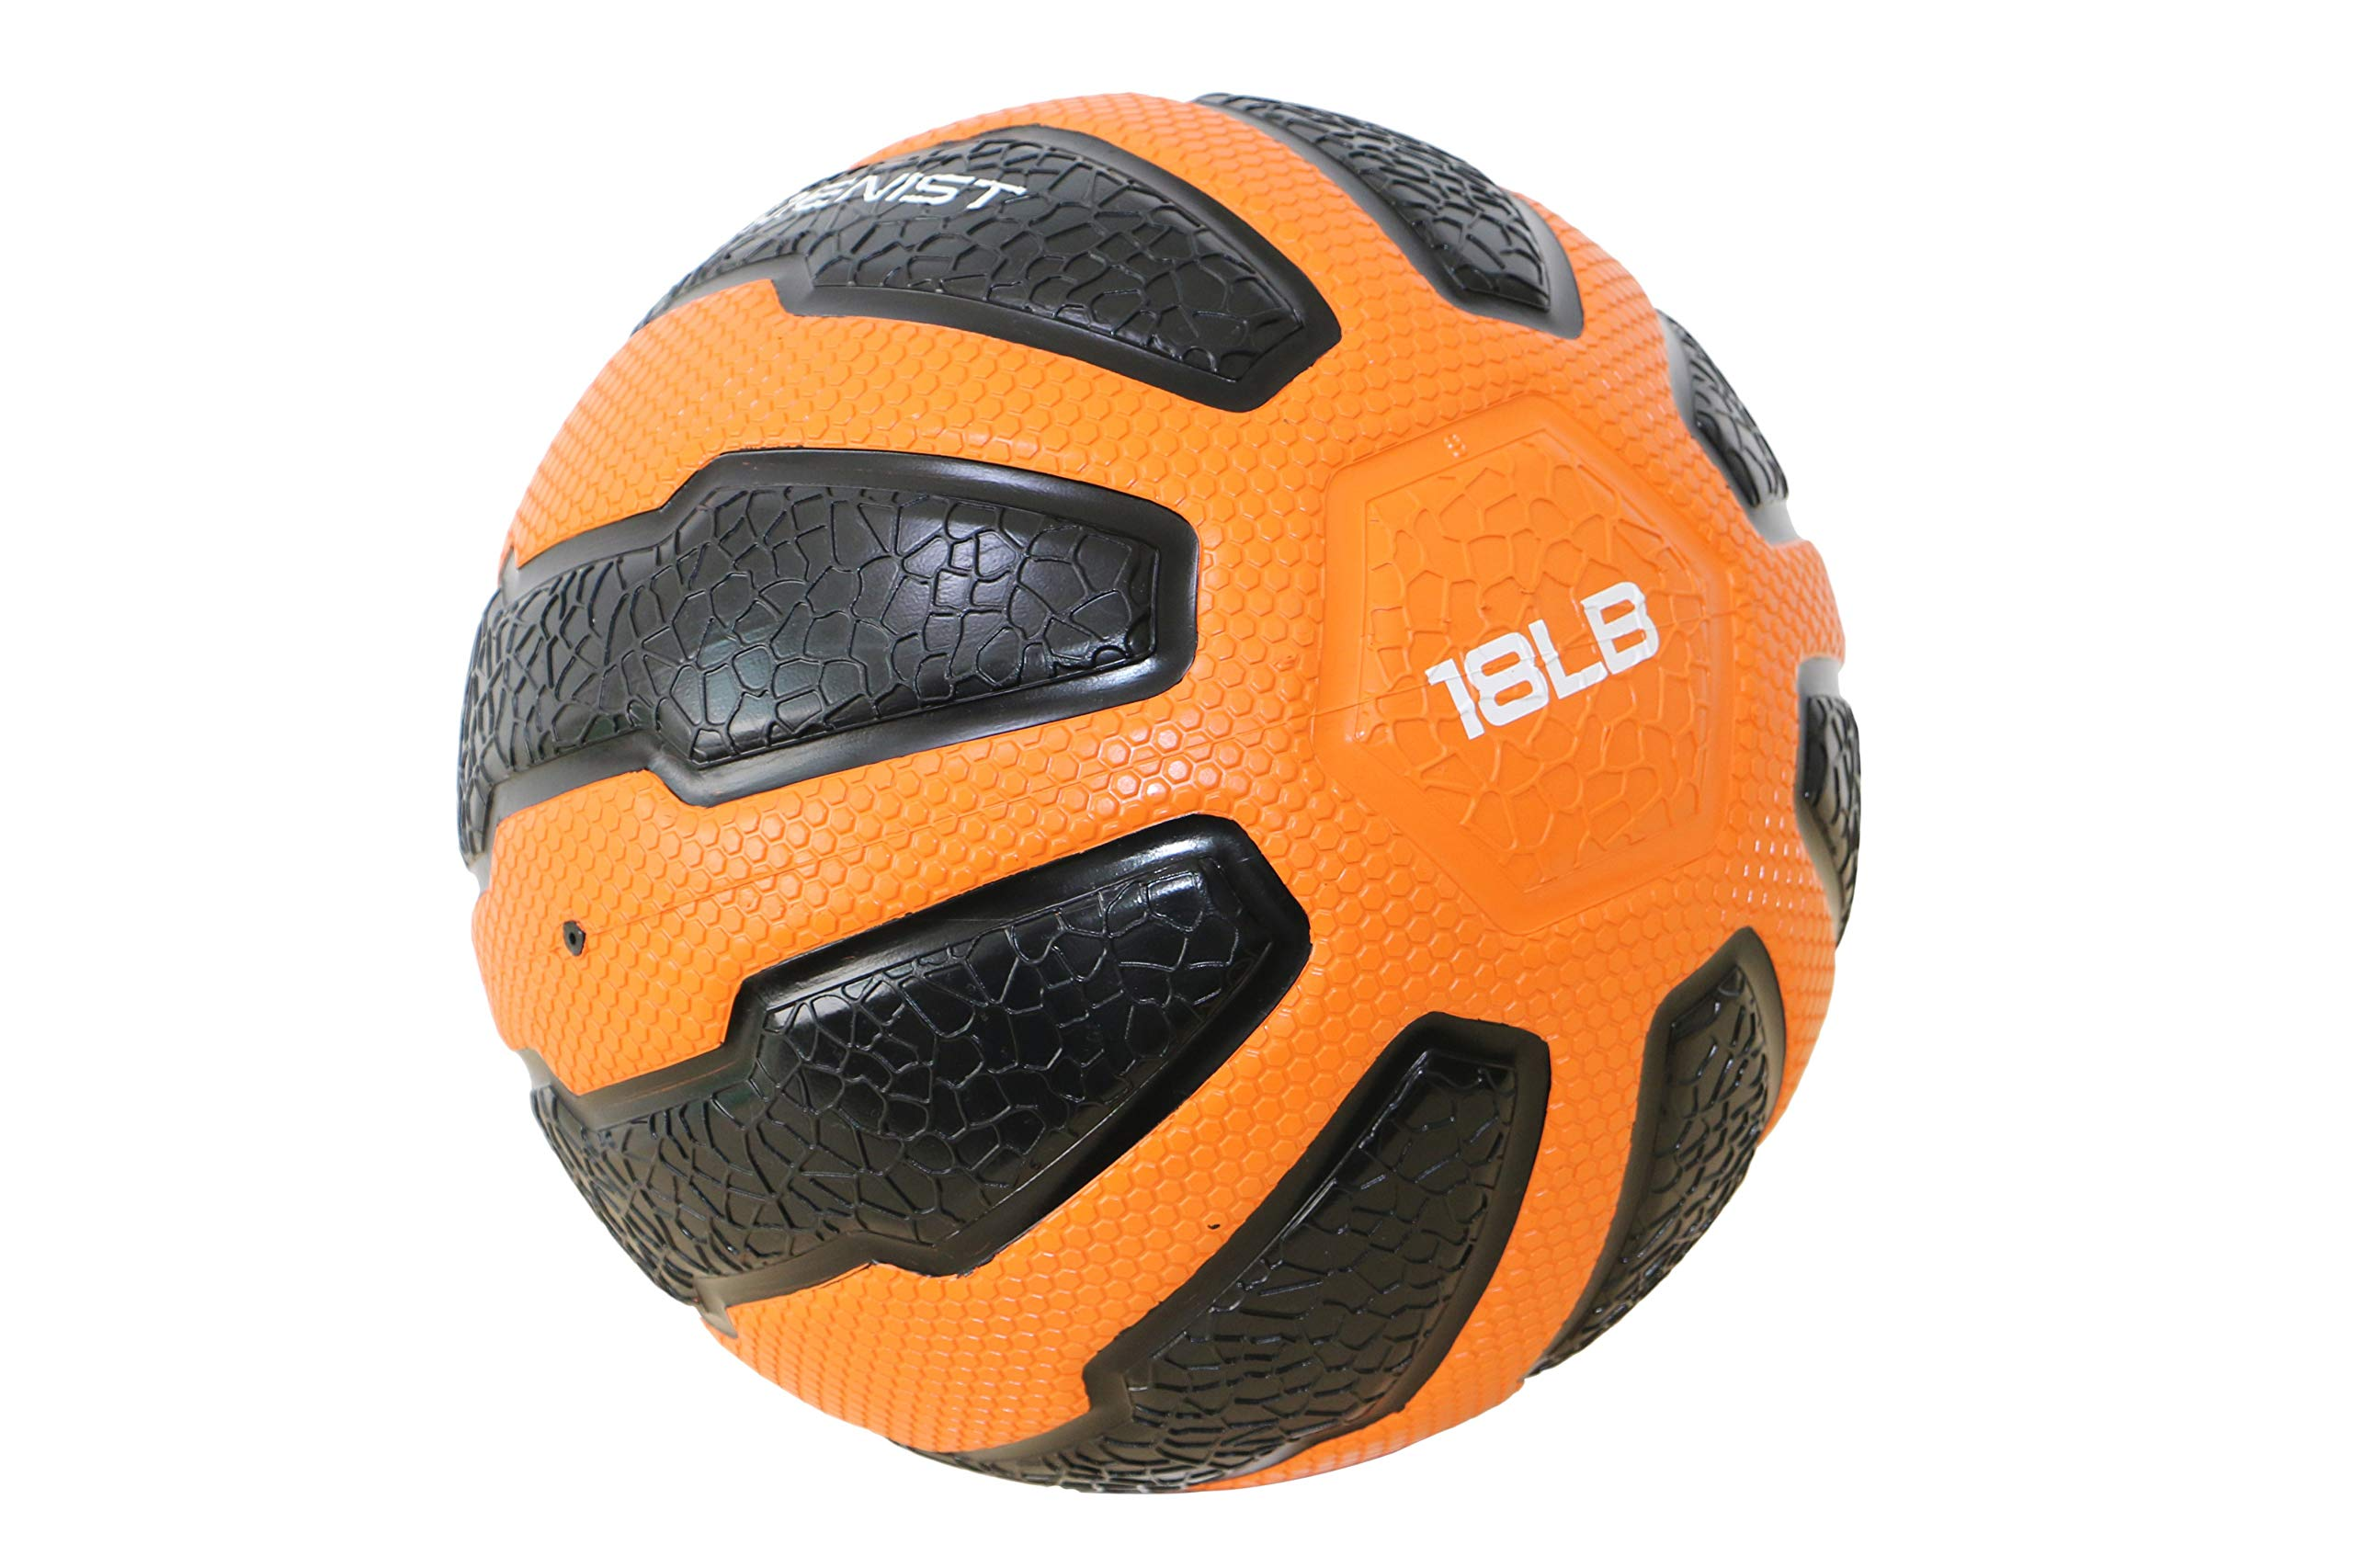 GYMENIST Rubber Medicine Ball with Textured Grip, Available in 9 Sizes, 2-20 LB, Weighted Fitness Balls,Improves Balance and Flexibility - Great for Gym, Workouts, (18 LB (Orange-Black))